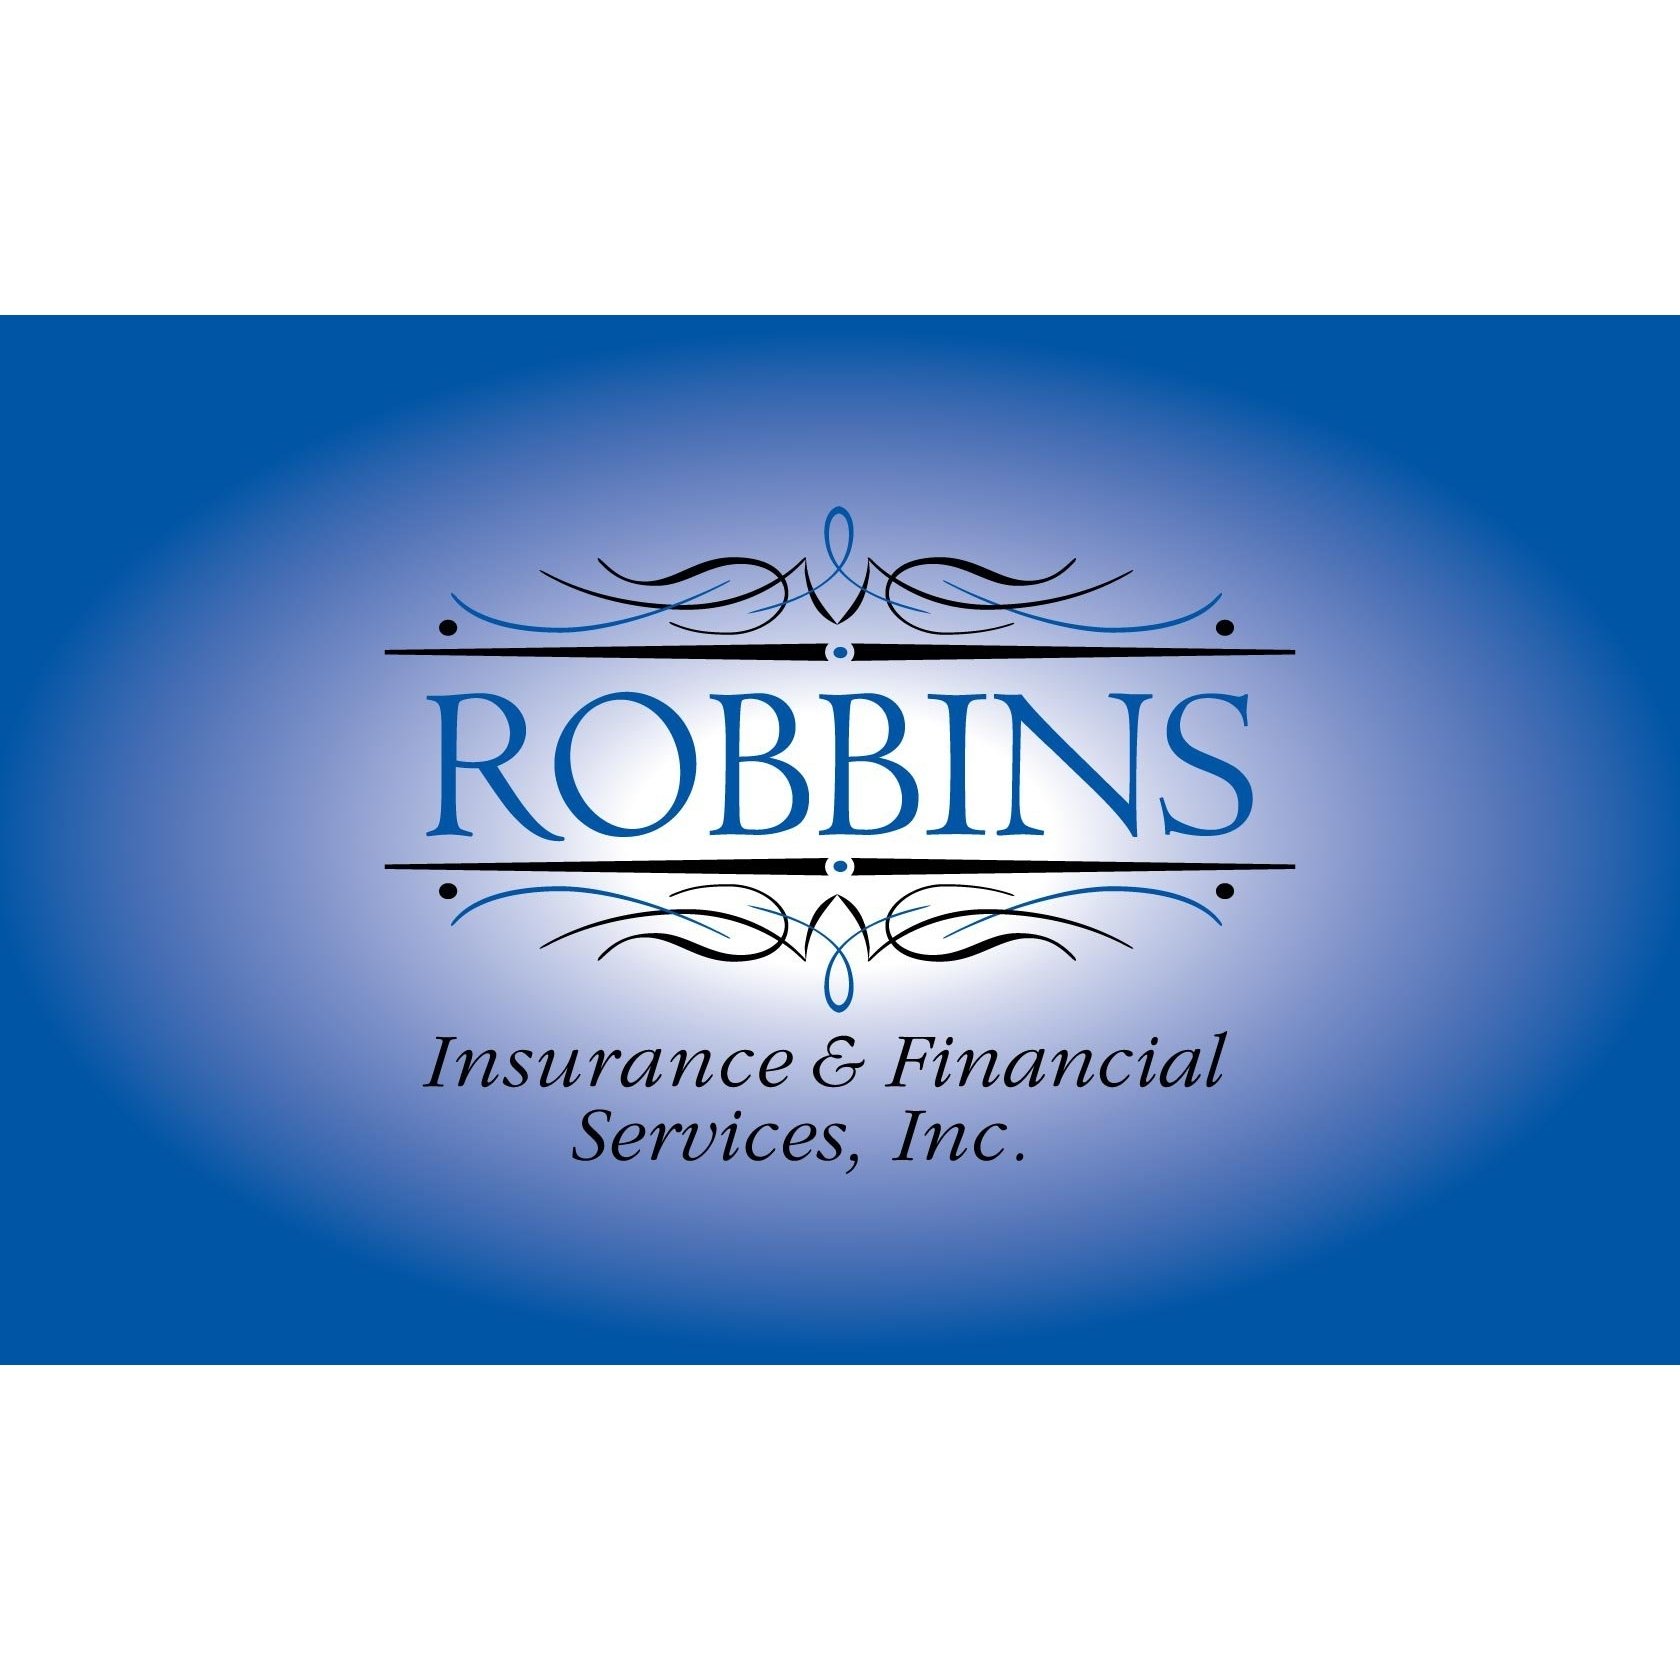 Financial Services: Robbins Insurance & Financial Services Inc. In Bradenton